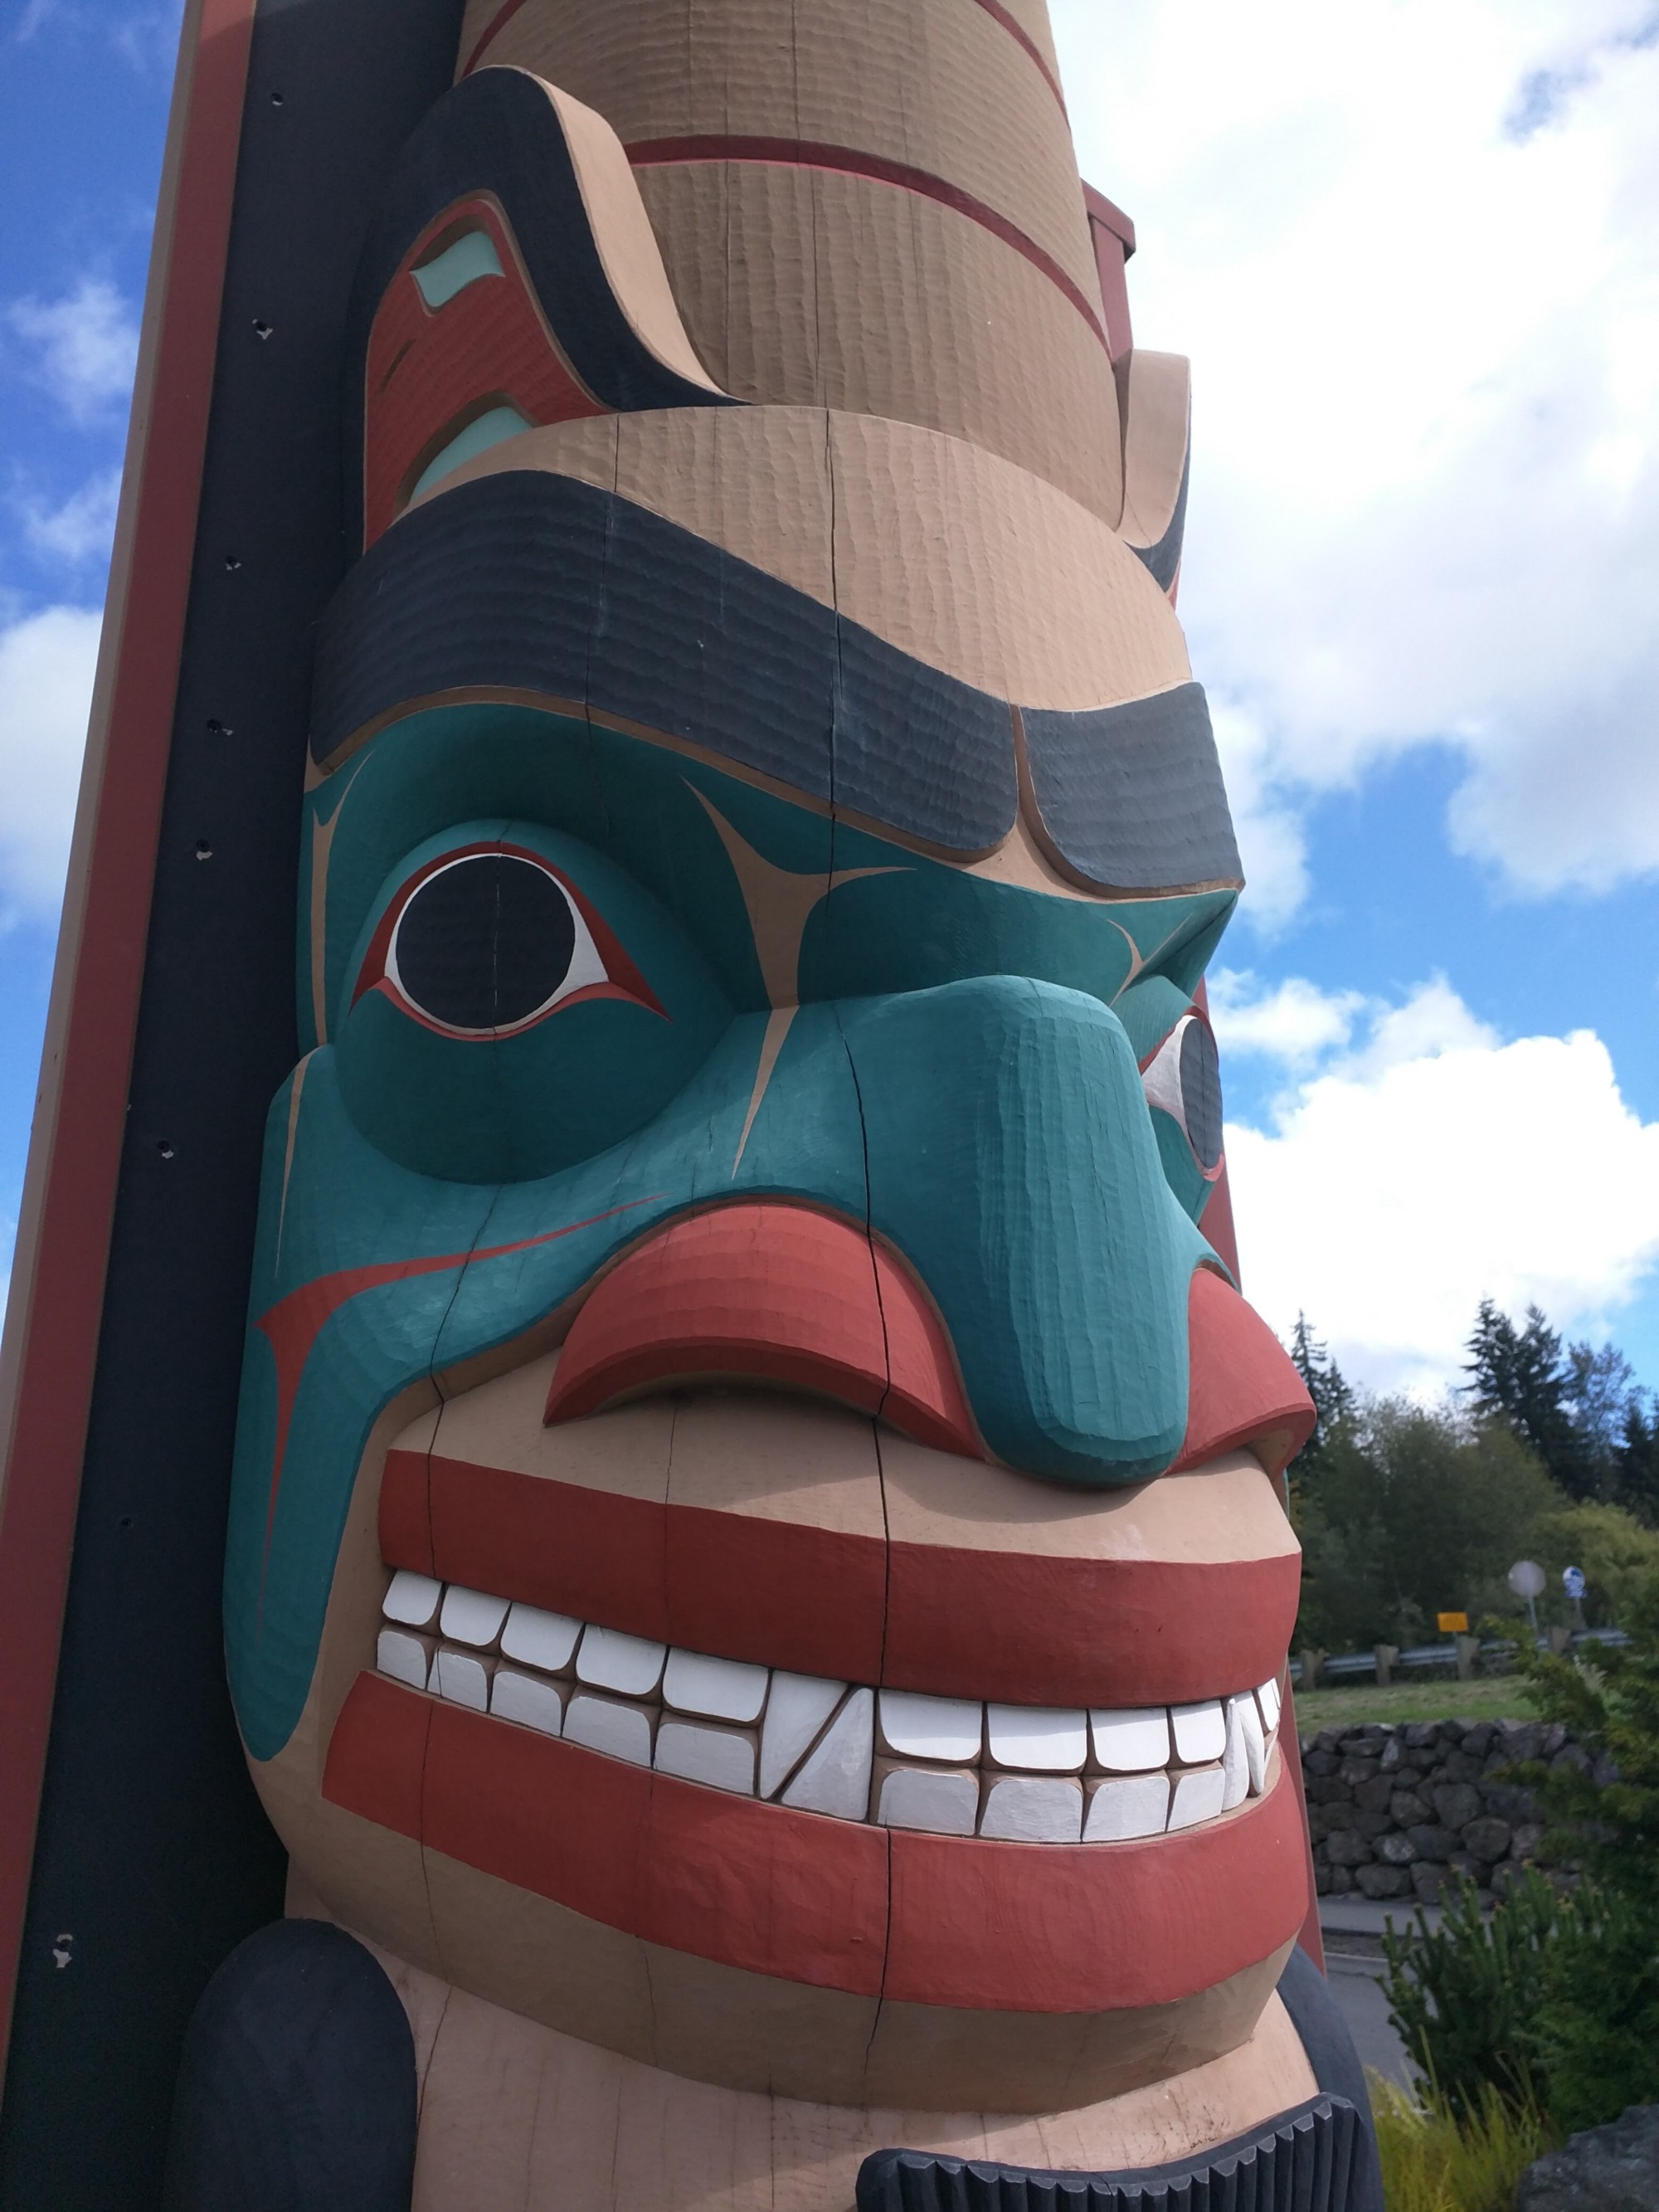 Photo taken of Bear totem at a rest stop along Highway 101 in the city of Blyn